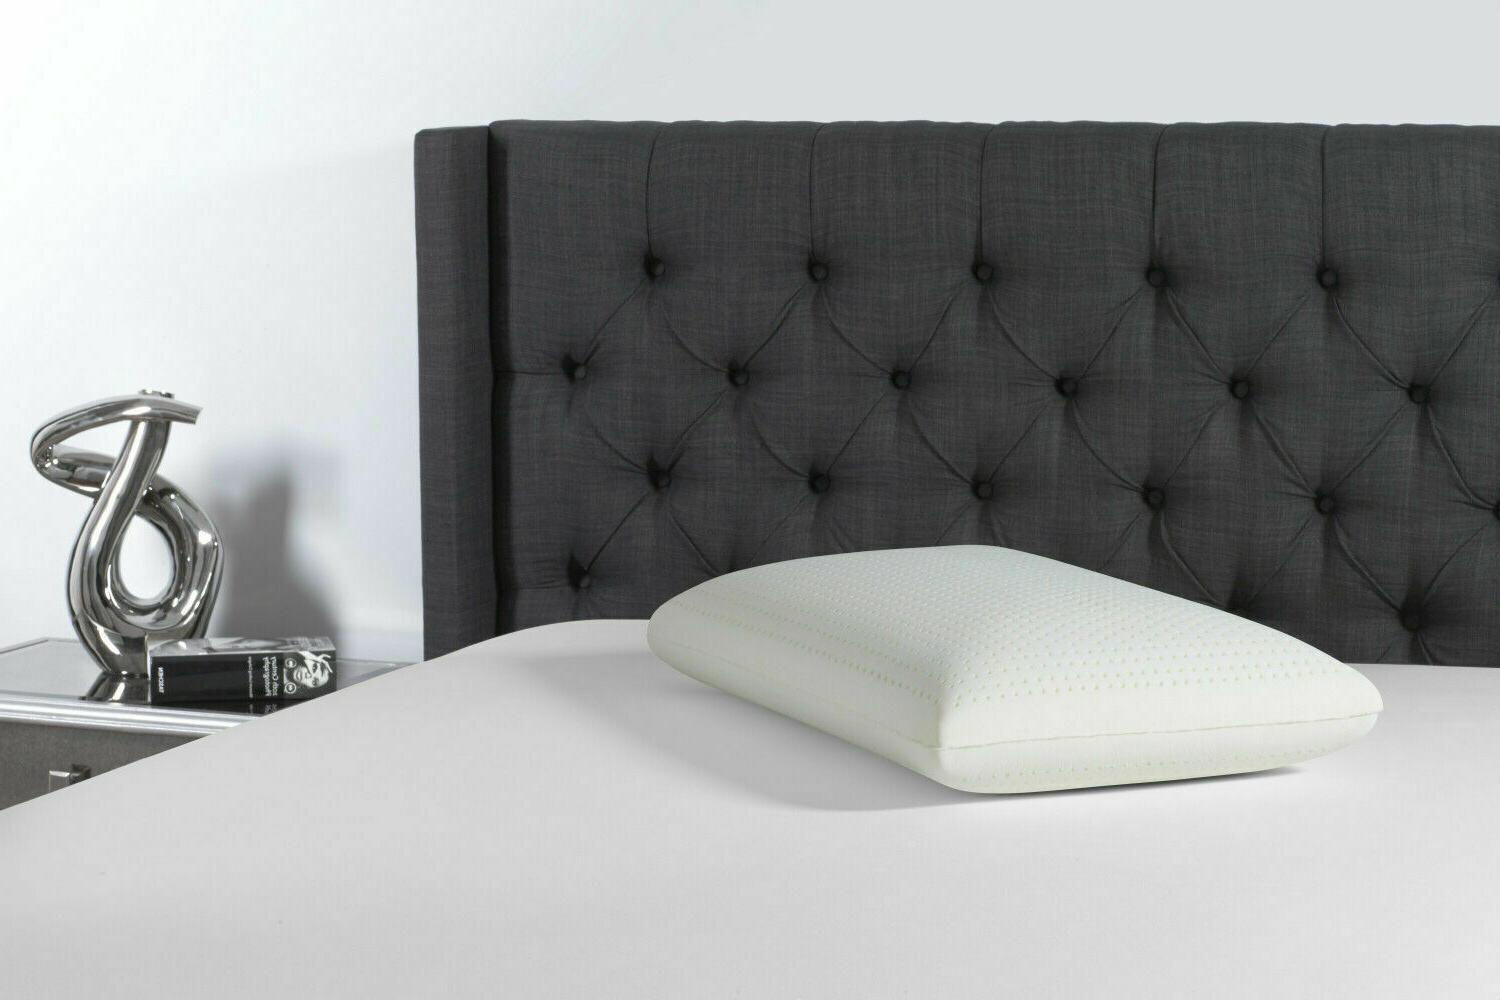 Standard Pillows Breathable Materials Removable Cover